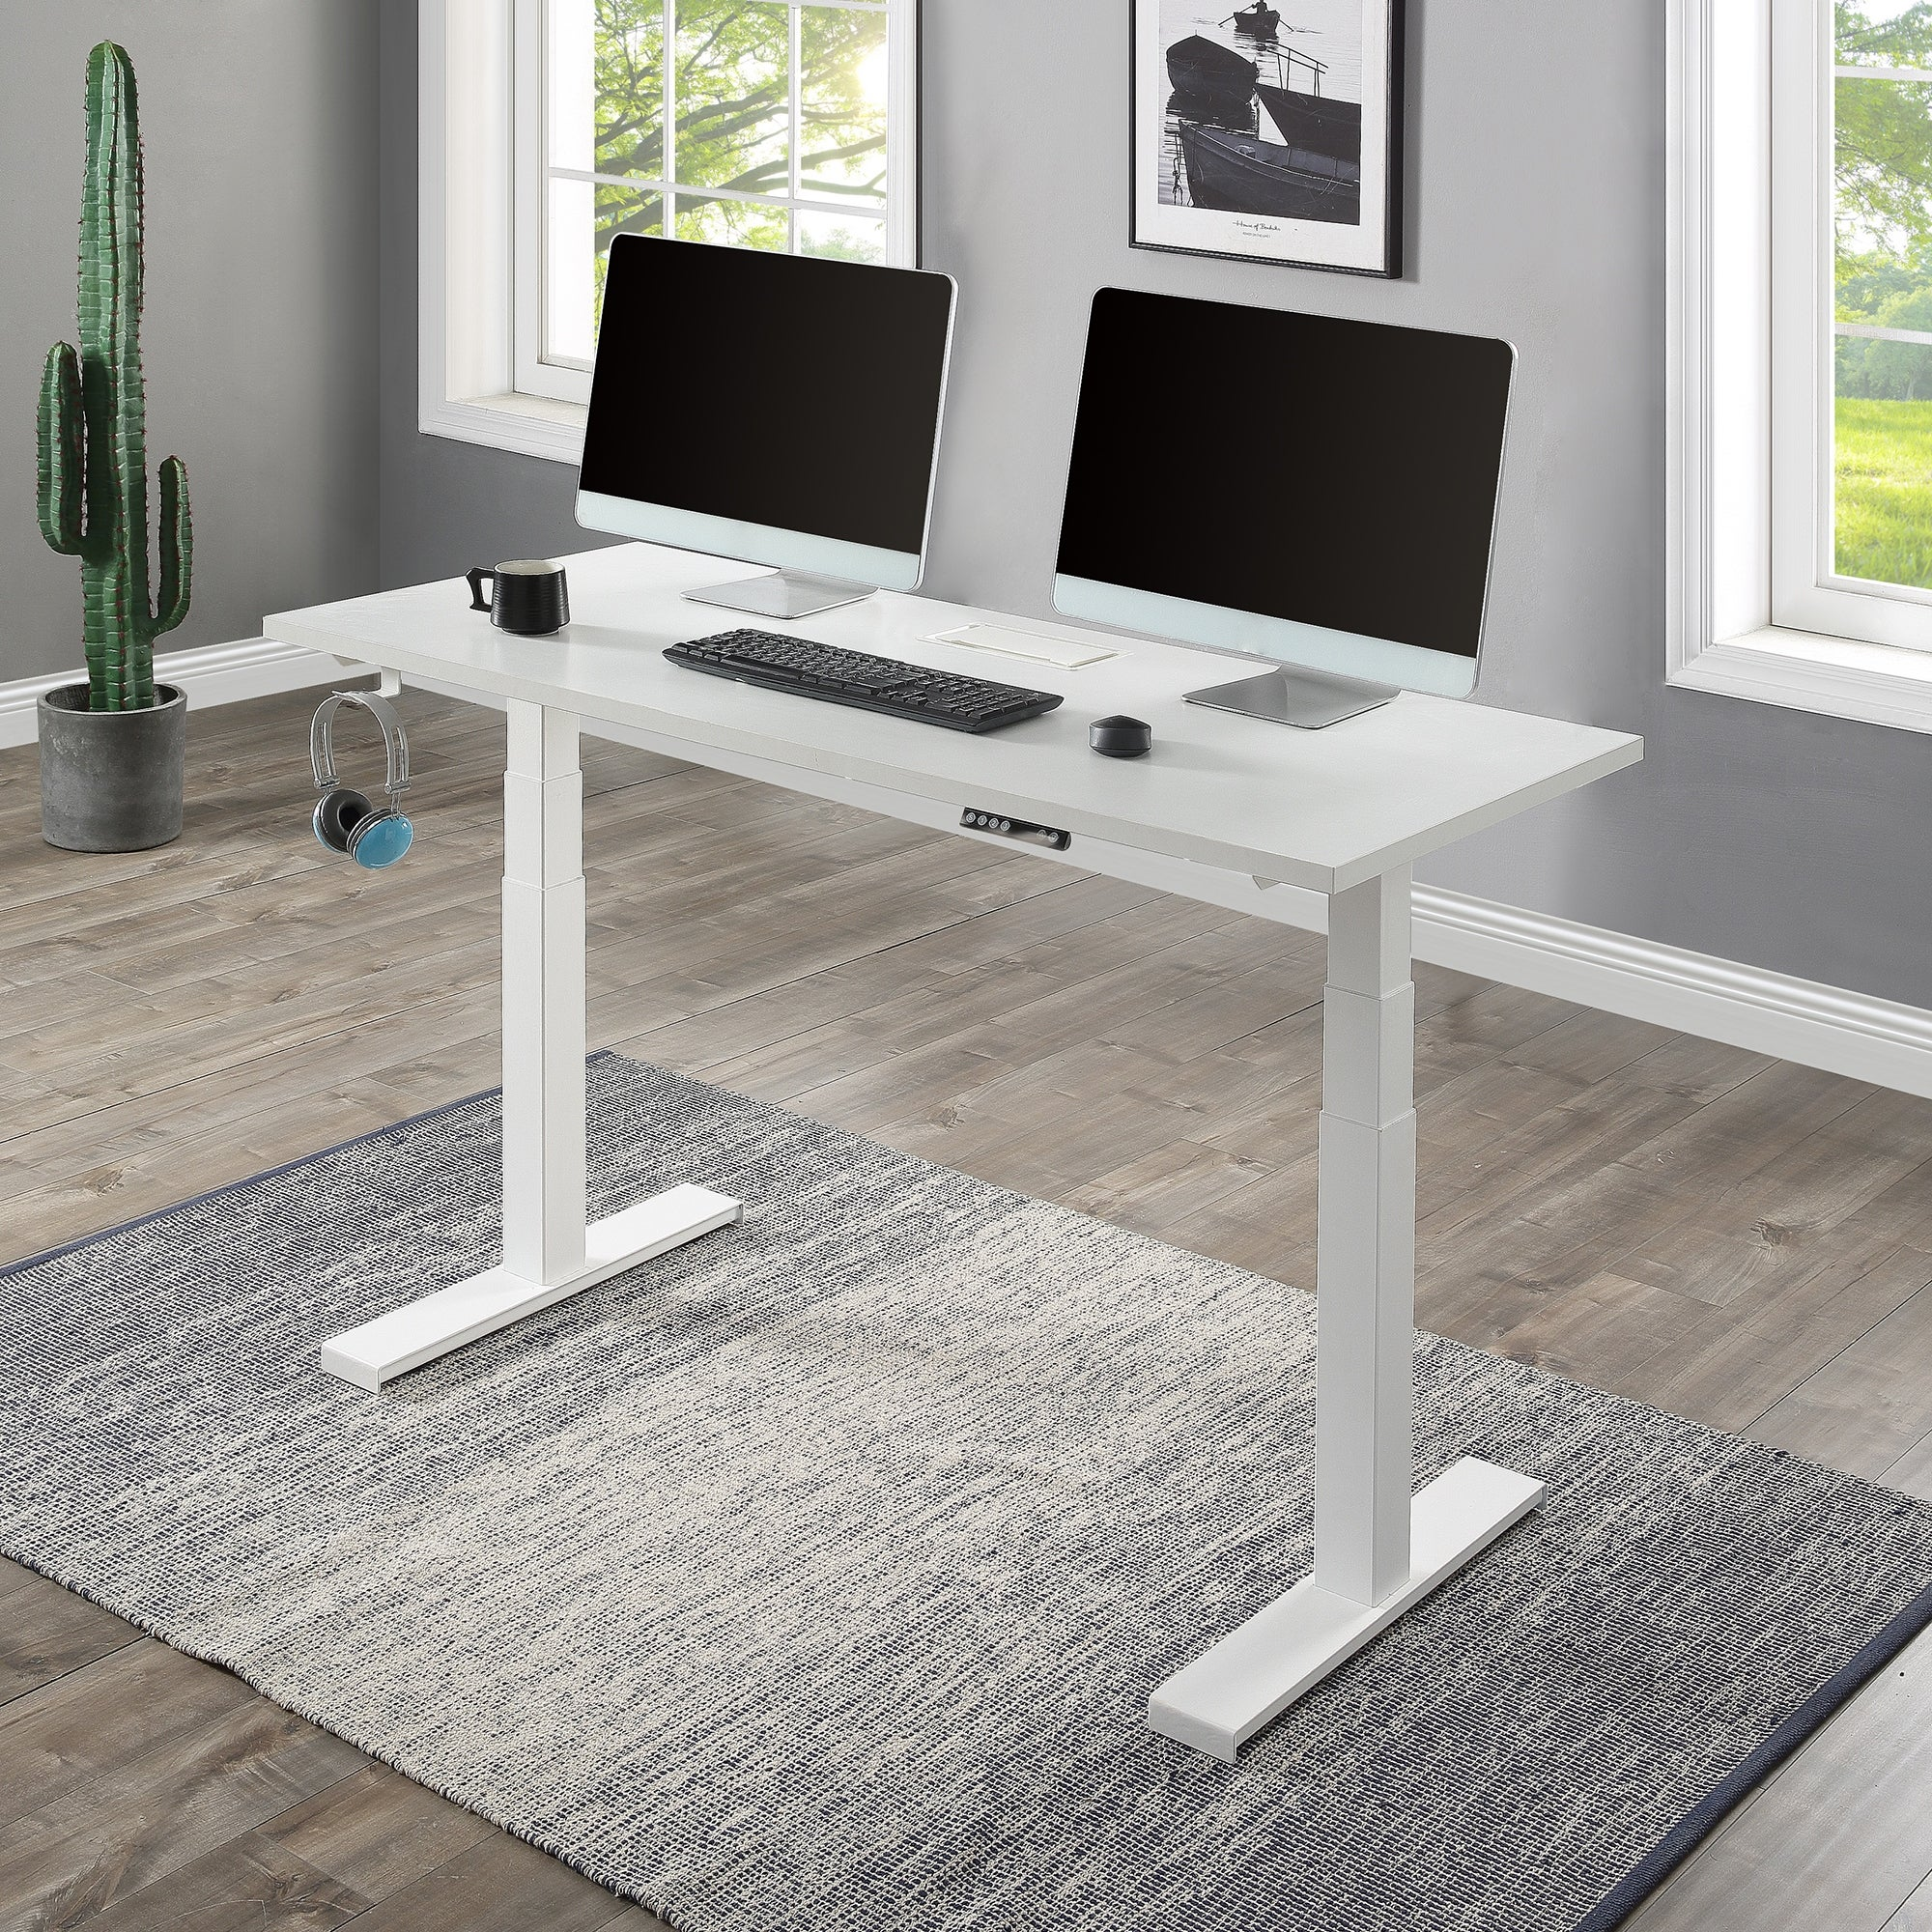 Home Office Height Adjustable Electric Standing Computer Desk Overstock 32630160